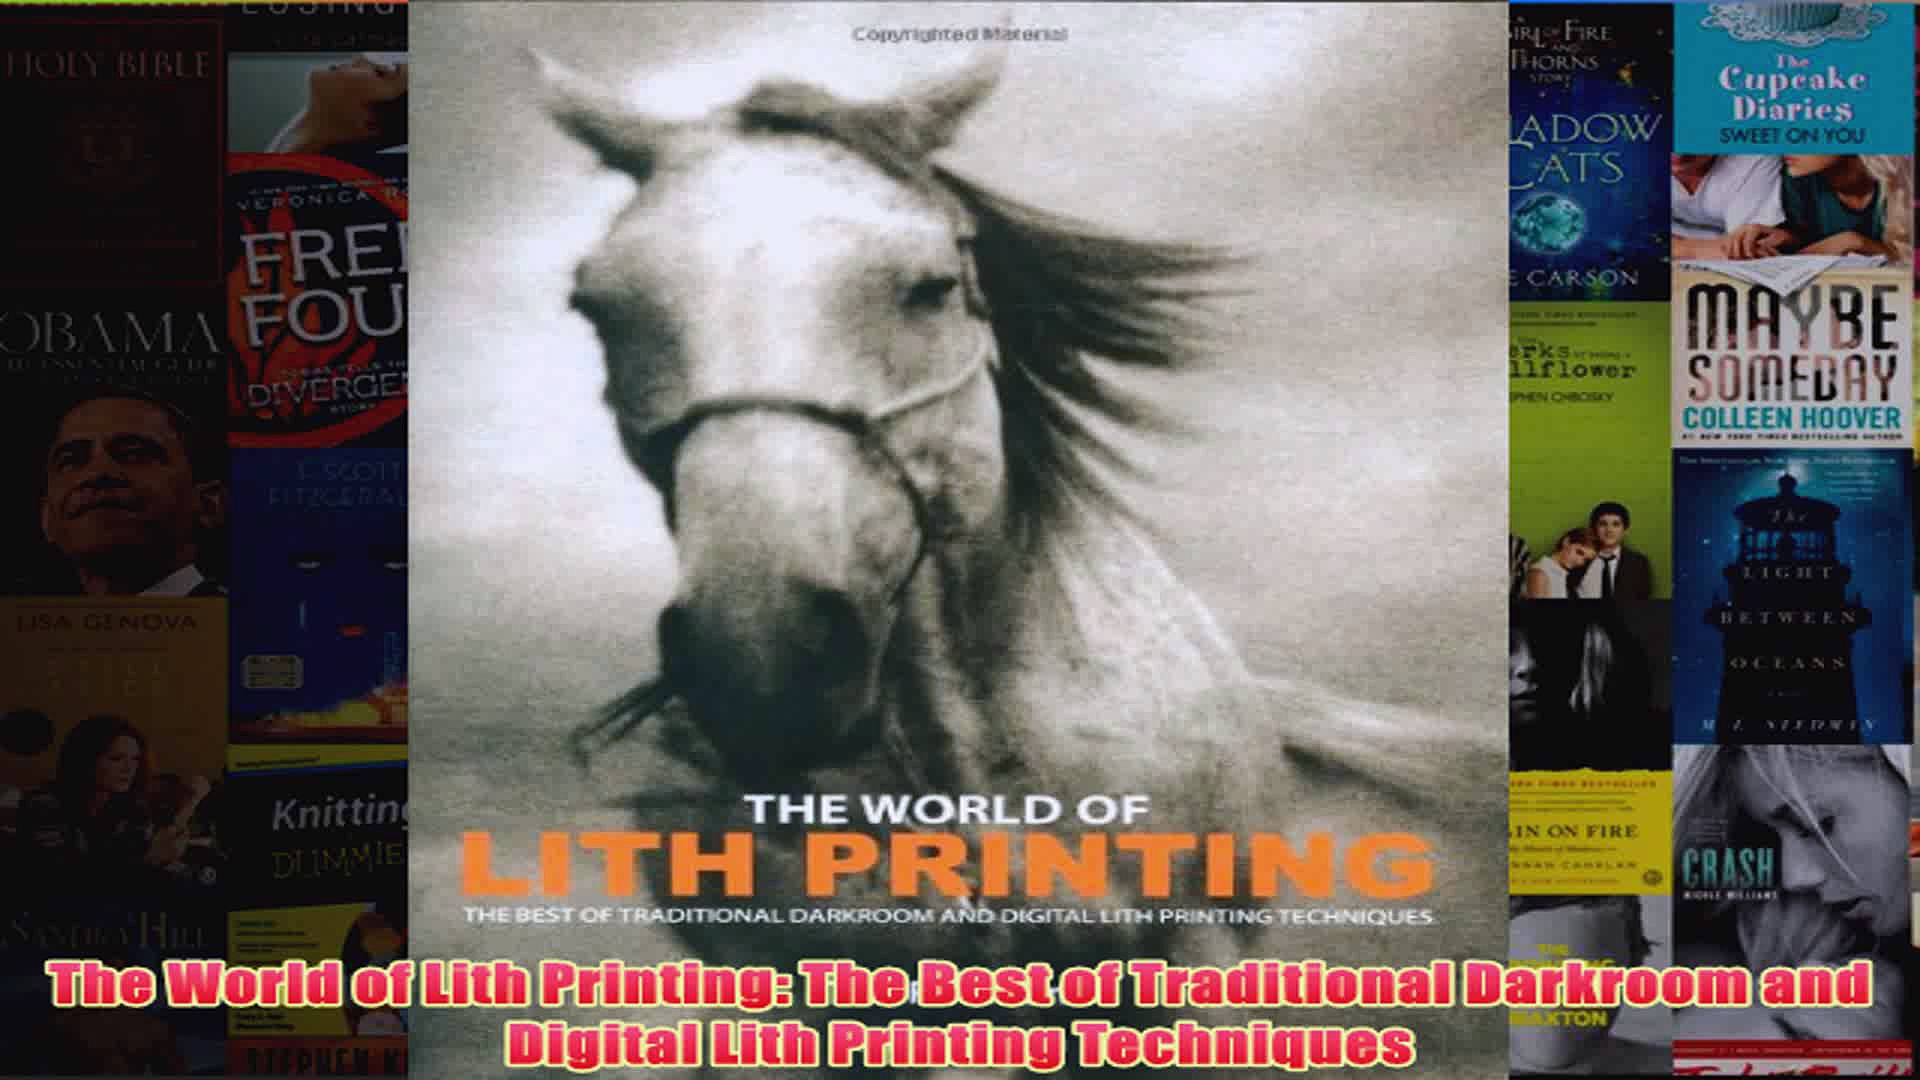 The World of Lith Printing The Best of Traditional Darkroom and Digital Lith Printing